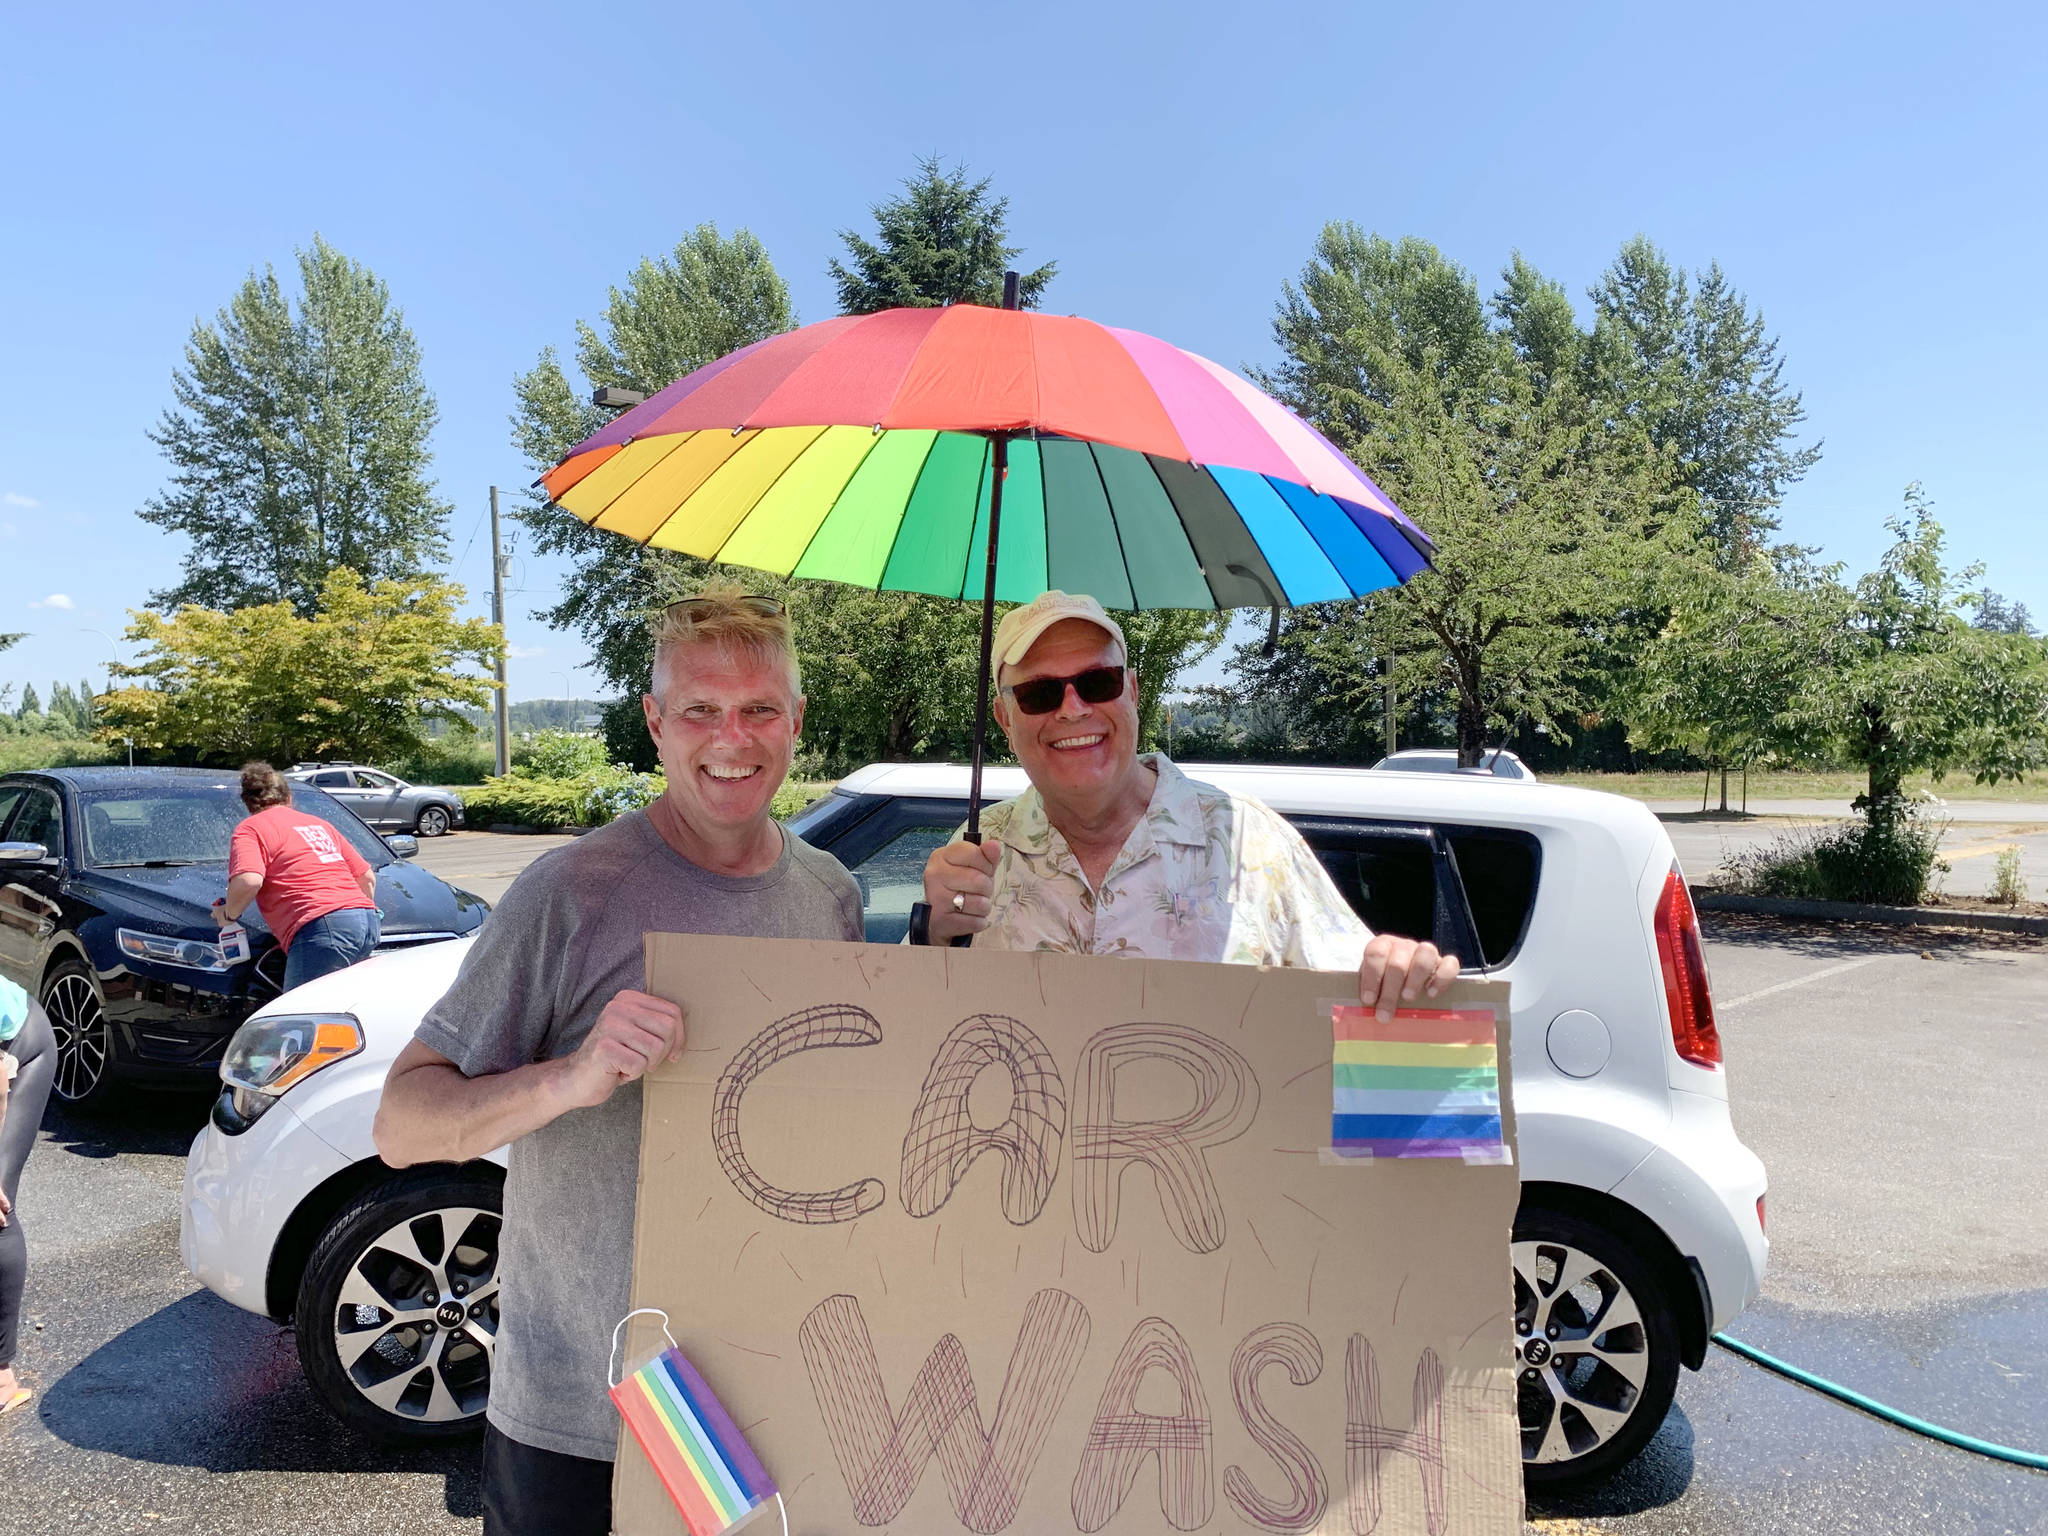 Liberal candidate for Cloverdale-Langley City John Aldag (grey T-shirt) hosted a car wash fundraiser in support of Langley Pride, One TWU, and Youth for a Change on Saturday, July 3, 2021 at St. Andrew's Anglican Church in Langley City. (John Aldag/Special to Langley Advance Times)